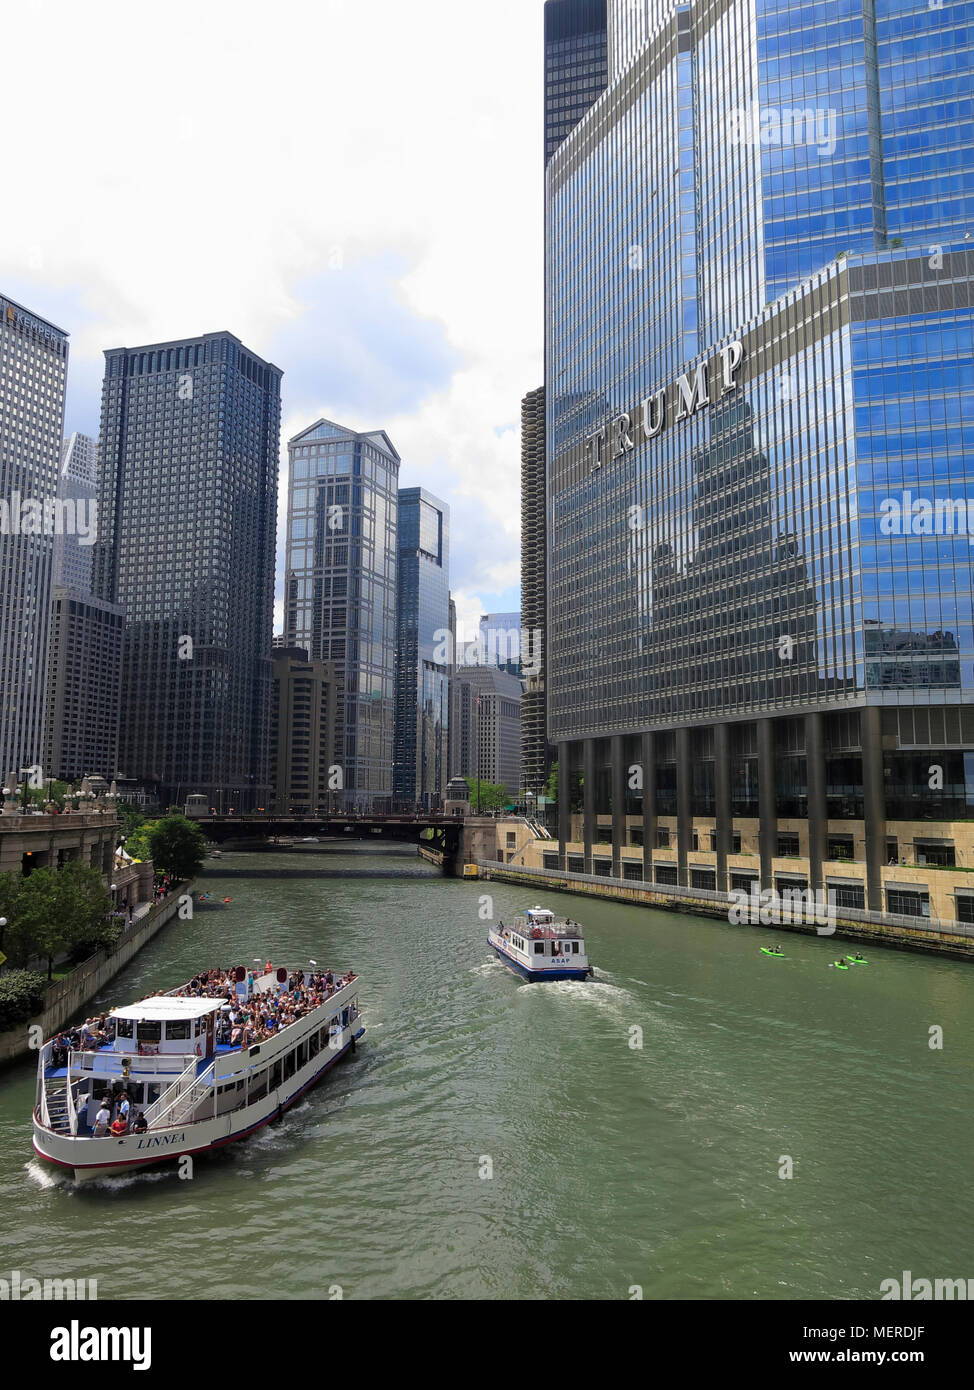 Trump Tower and International Hotel at Chicago River, Chicago, Illinois, USA - Stock Image